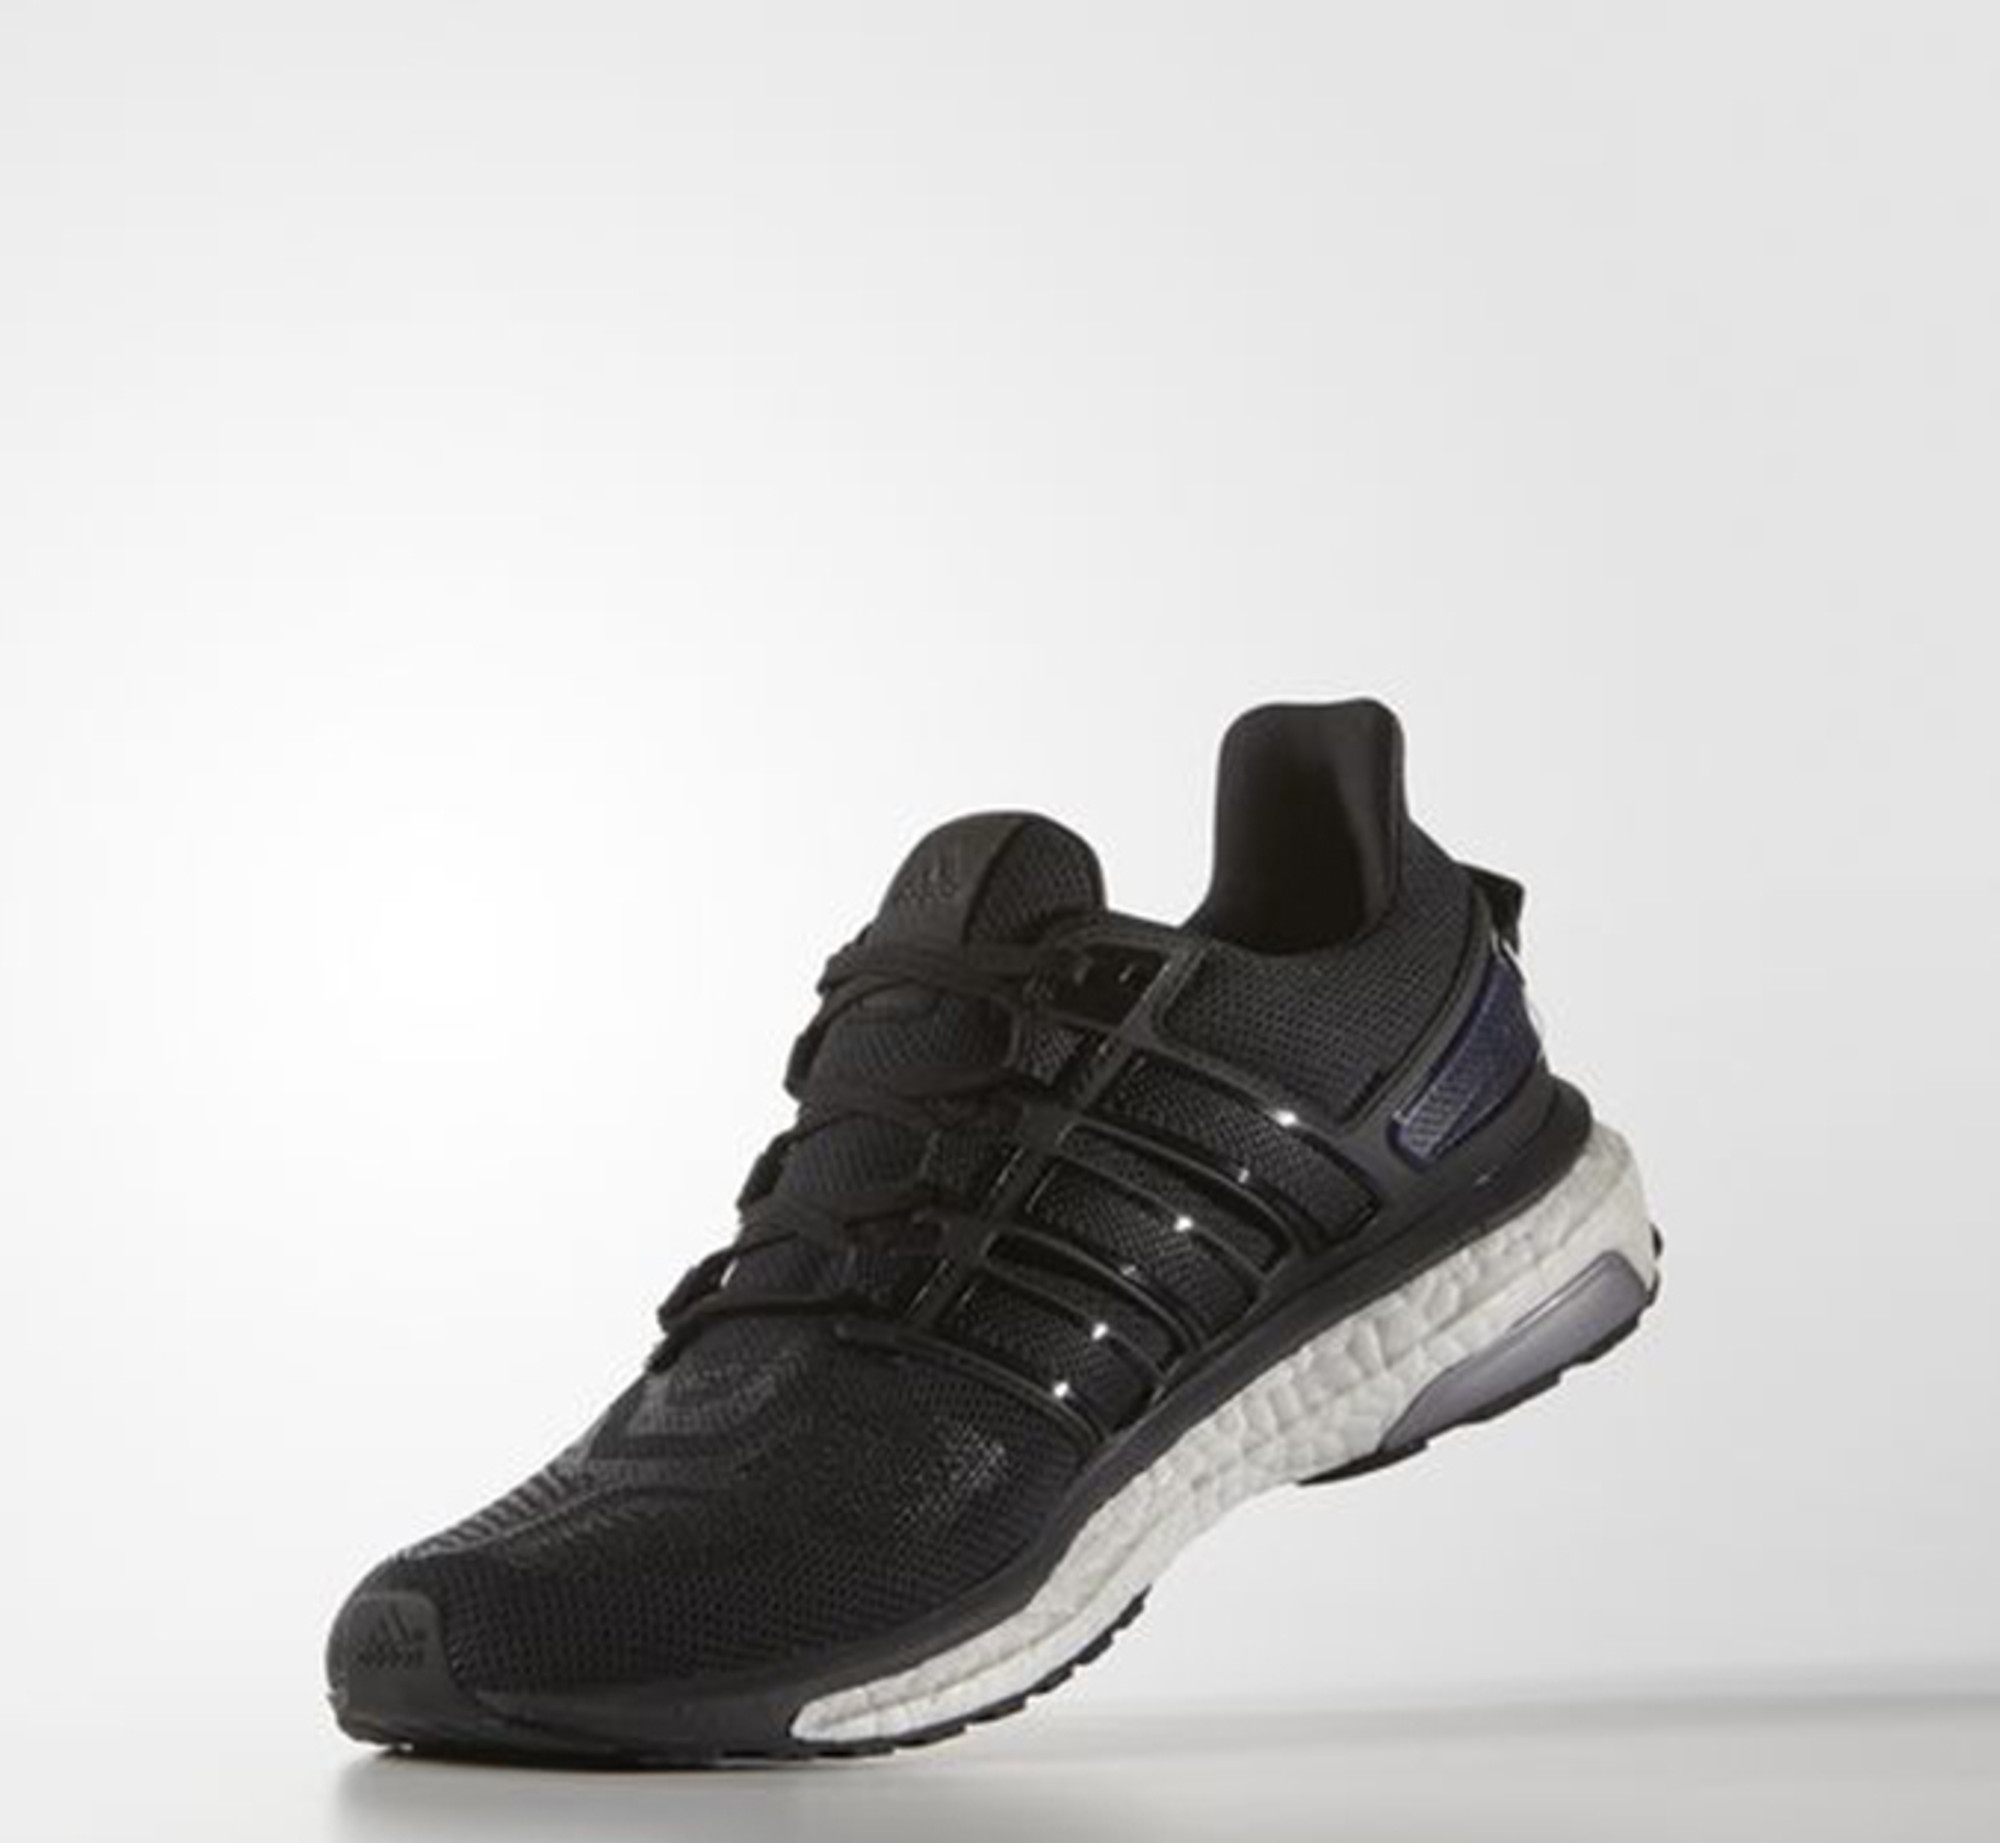 Stylish Adidas Energy Boost 3 Mens Shoes Core Black,Dark